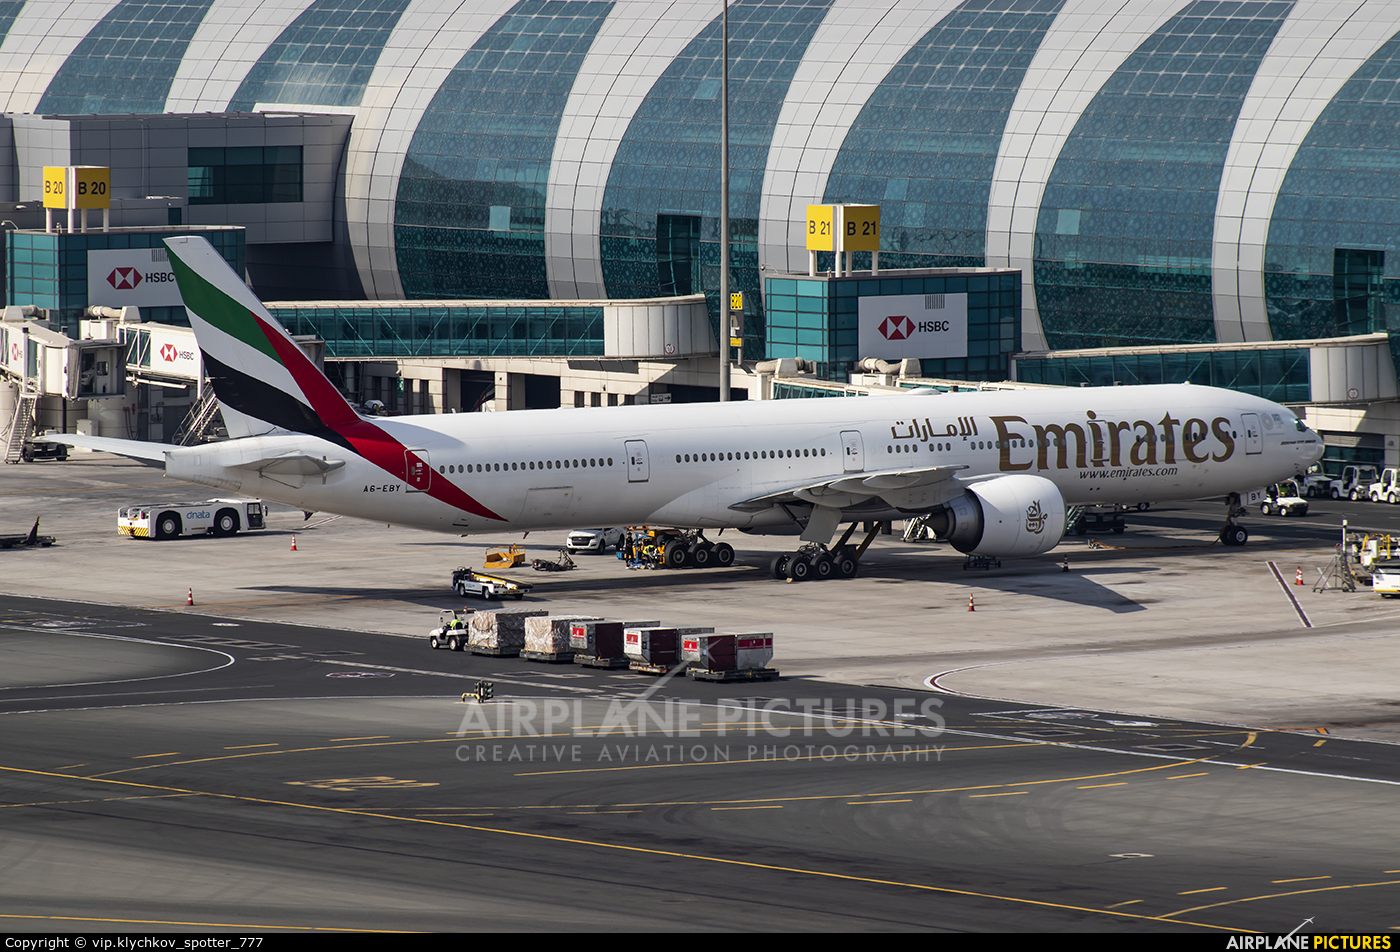 Emirates Airlines A6-EBY aircraft at Dubai Intl